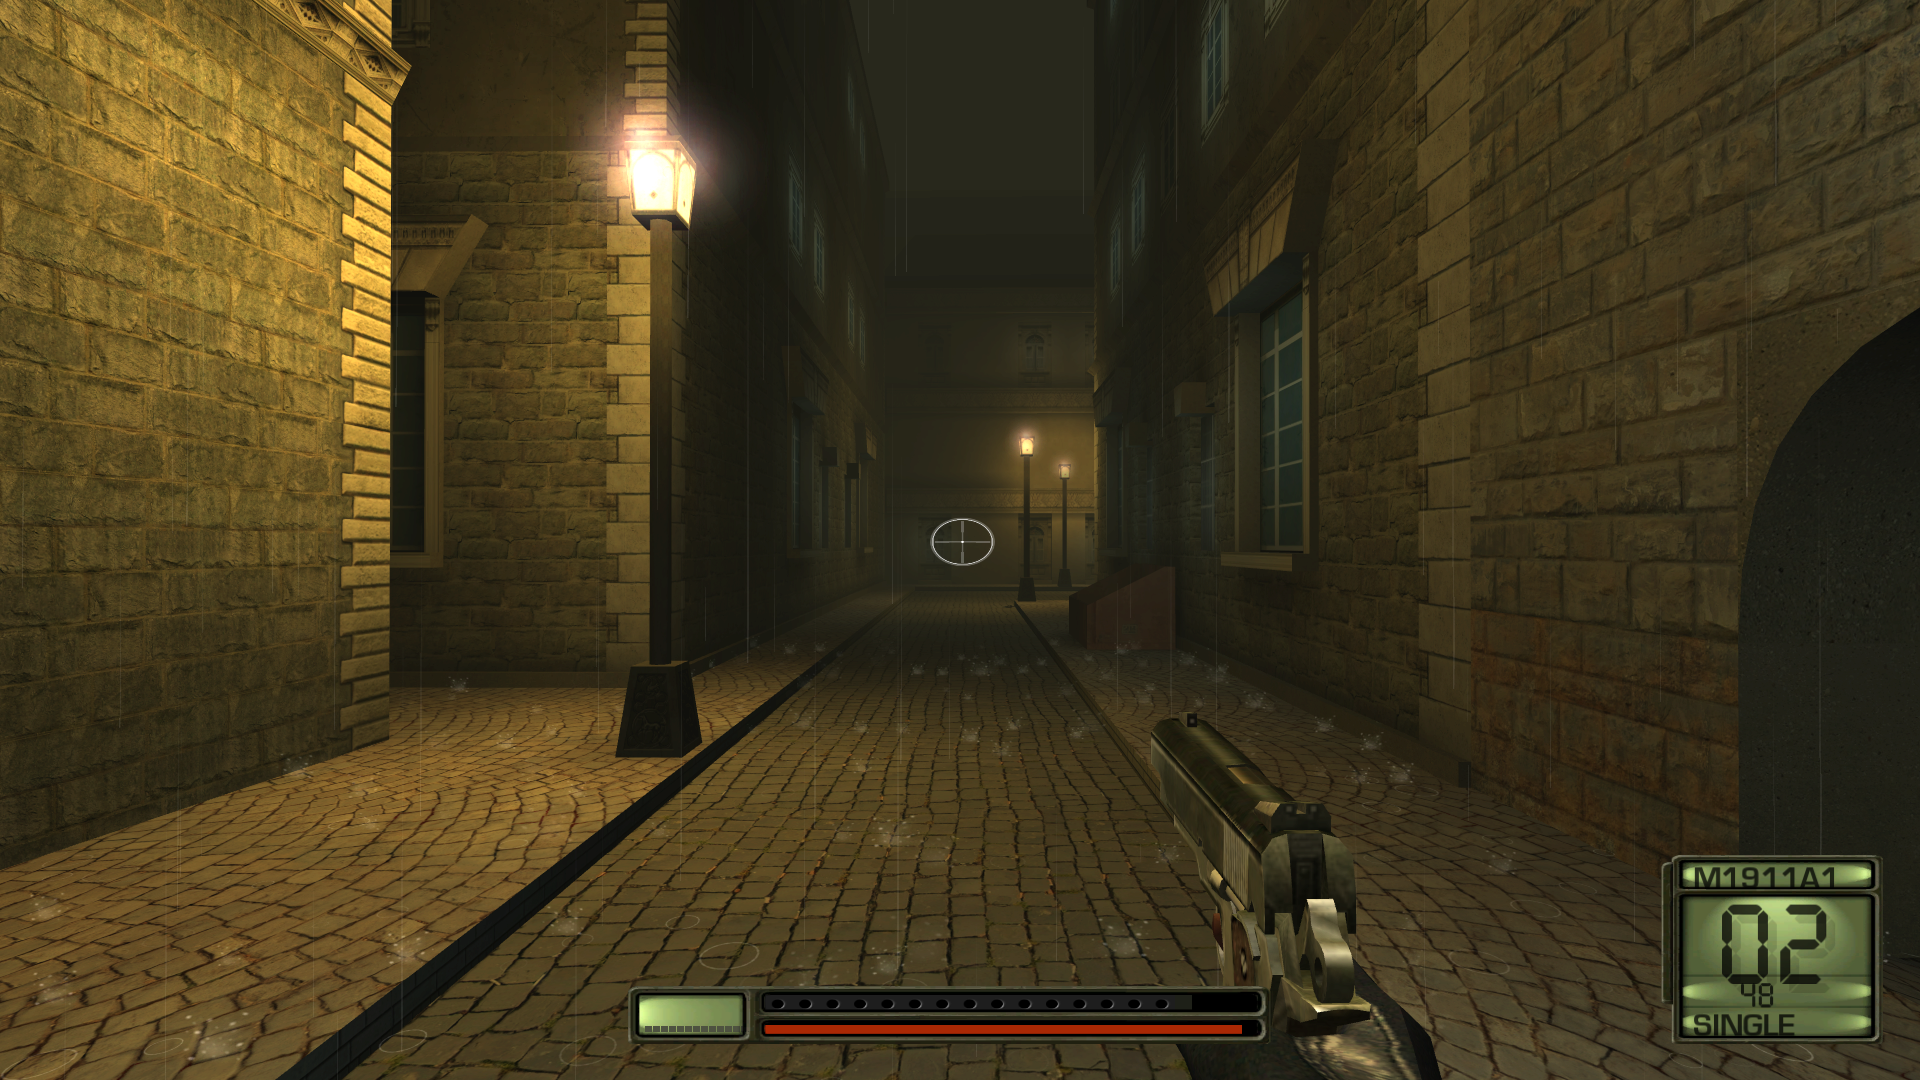 sof2 widescreen fov and hud fix file soldier of fortune ii mod db